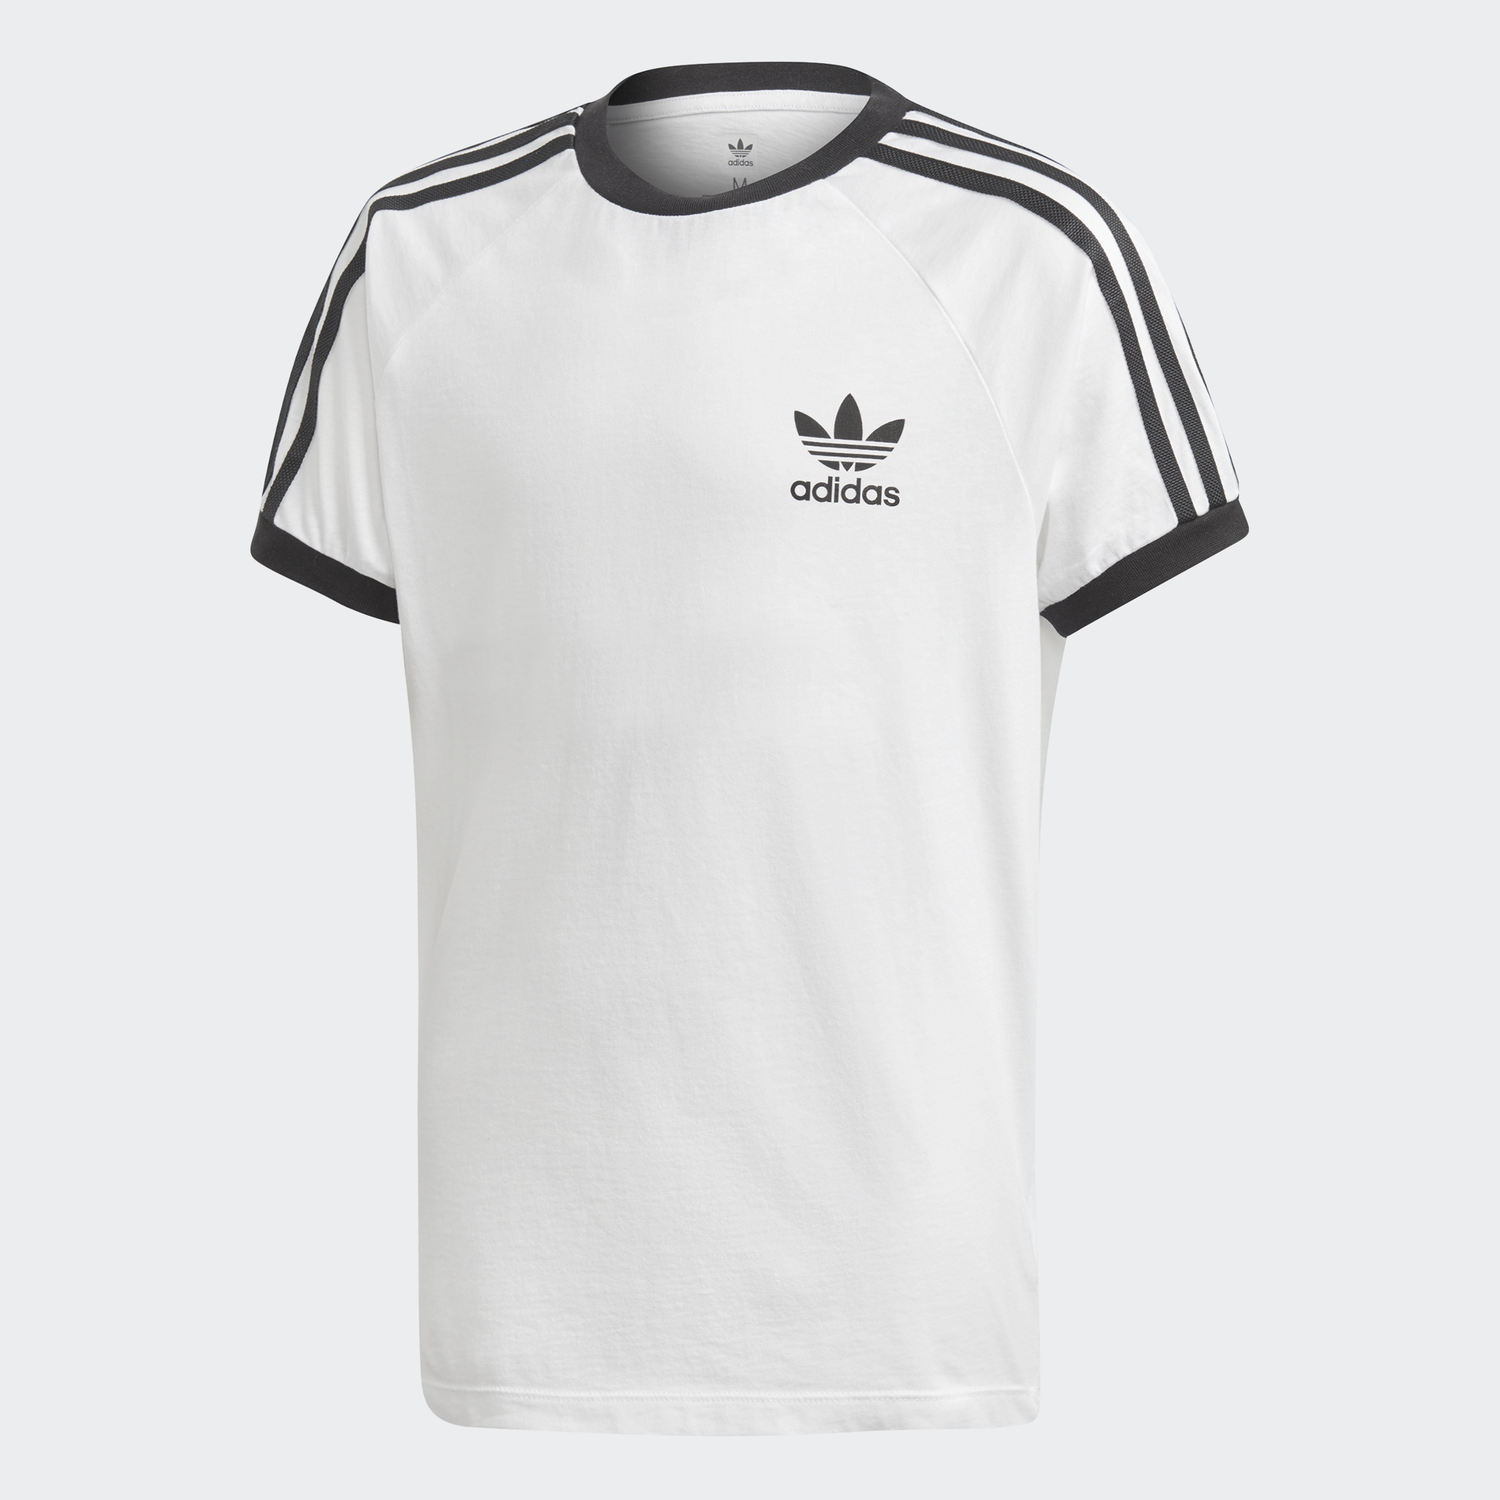 adidas shoes superstar, adidas Essentials 3 Stripes Tee